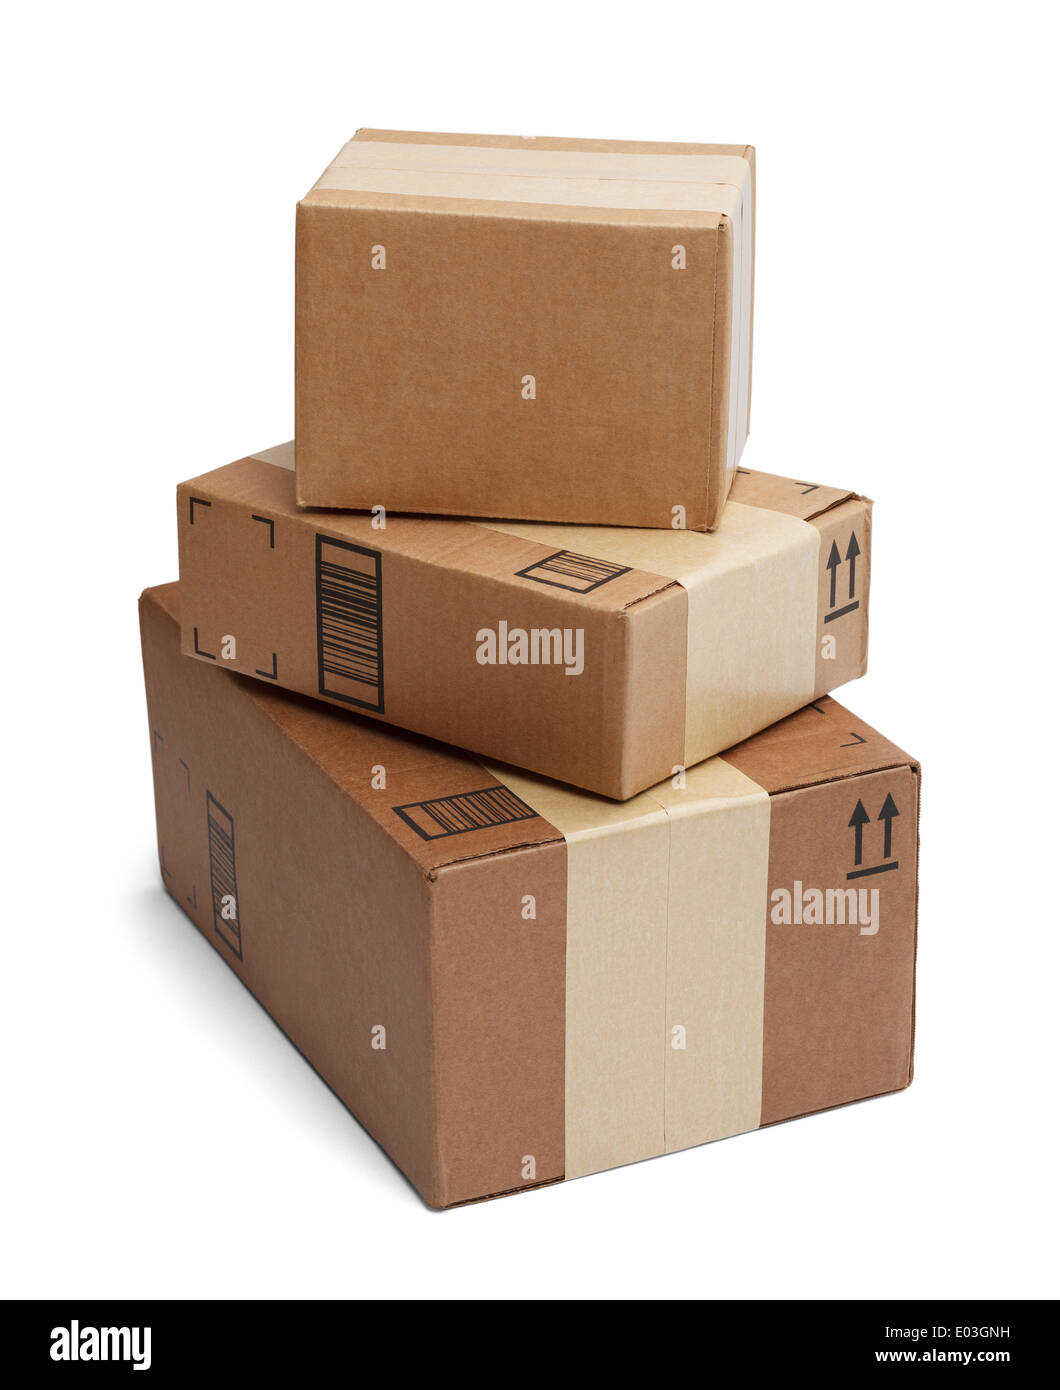 Three Boxes Stacked Tall Isolated on White Background. - Stock Image